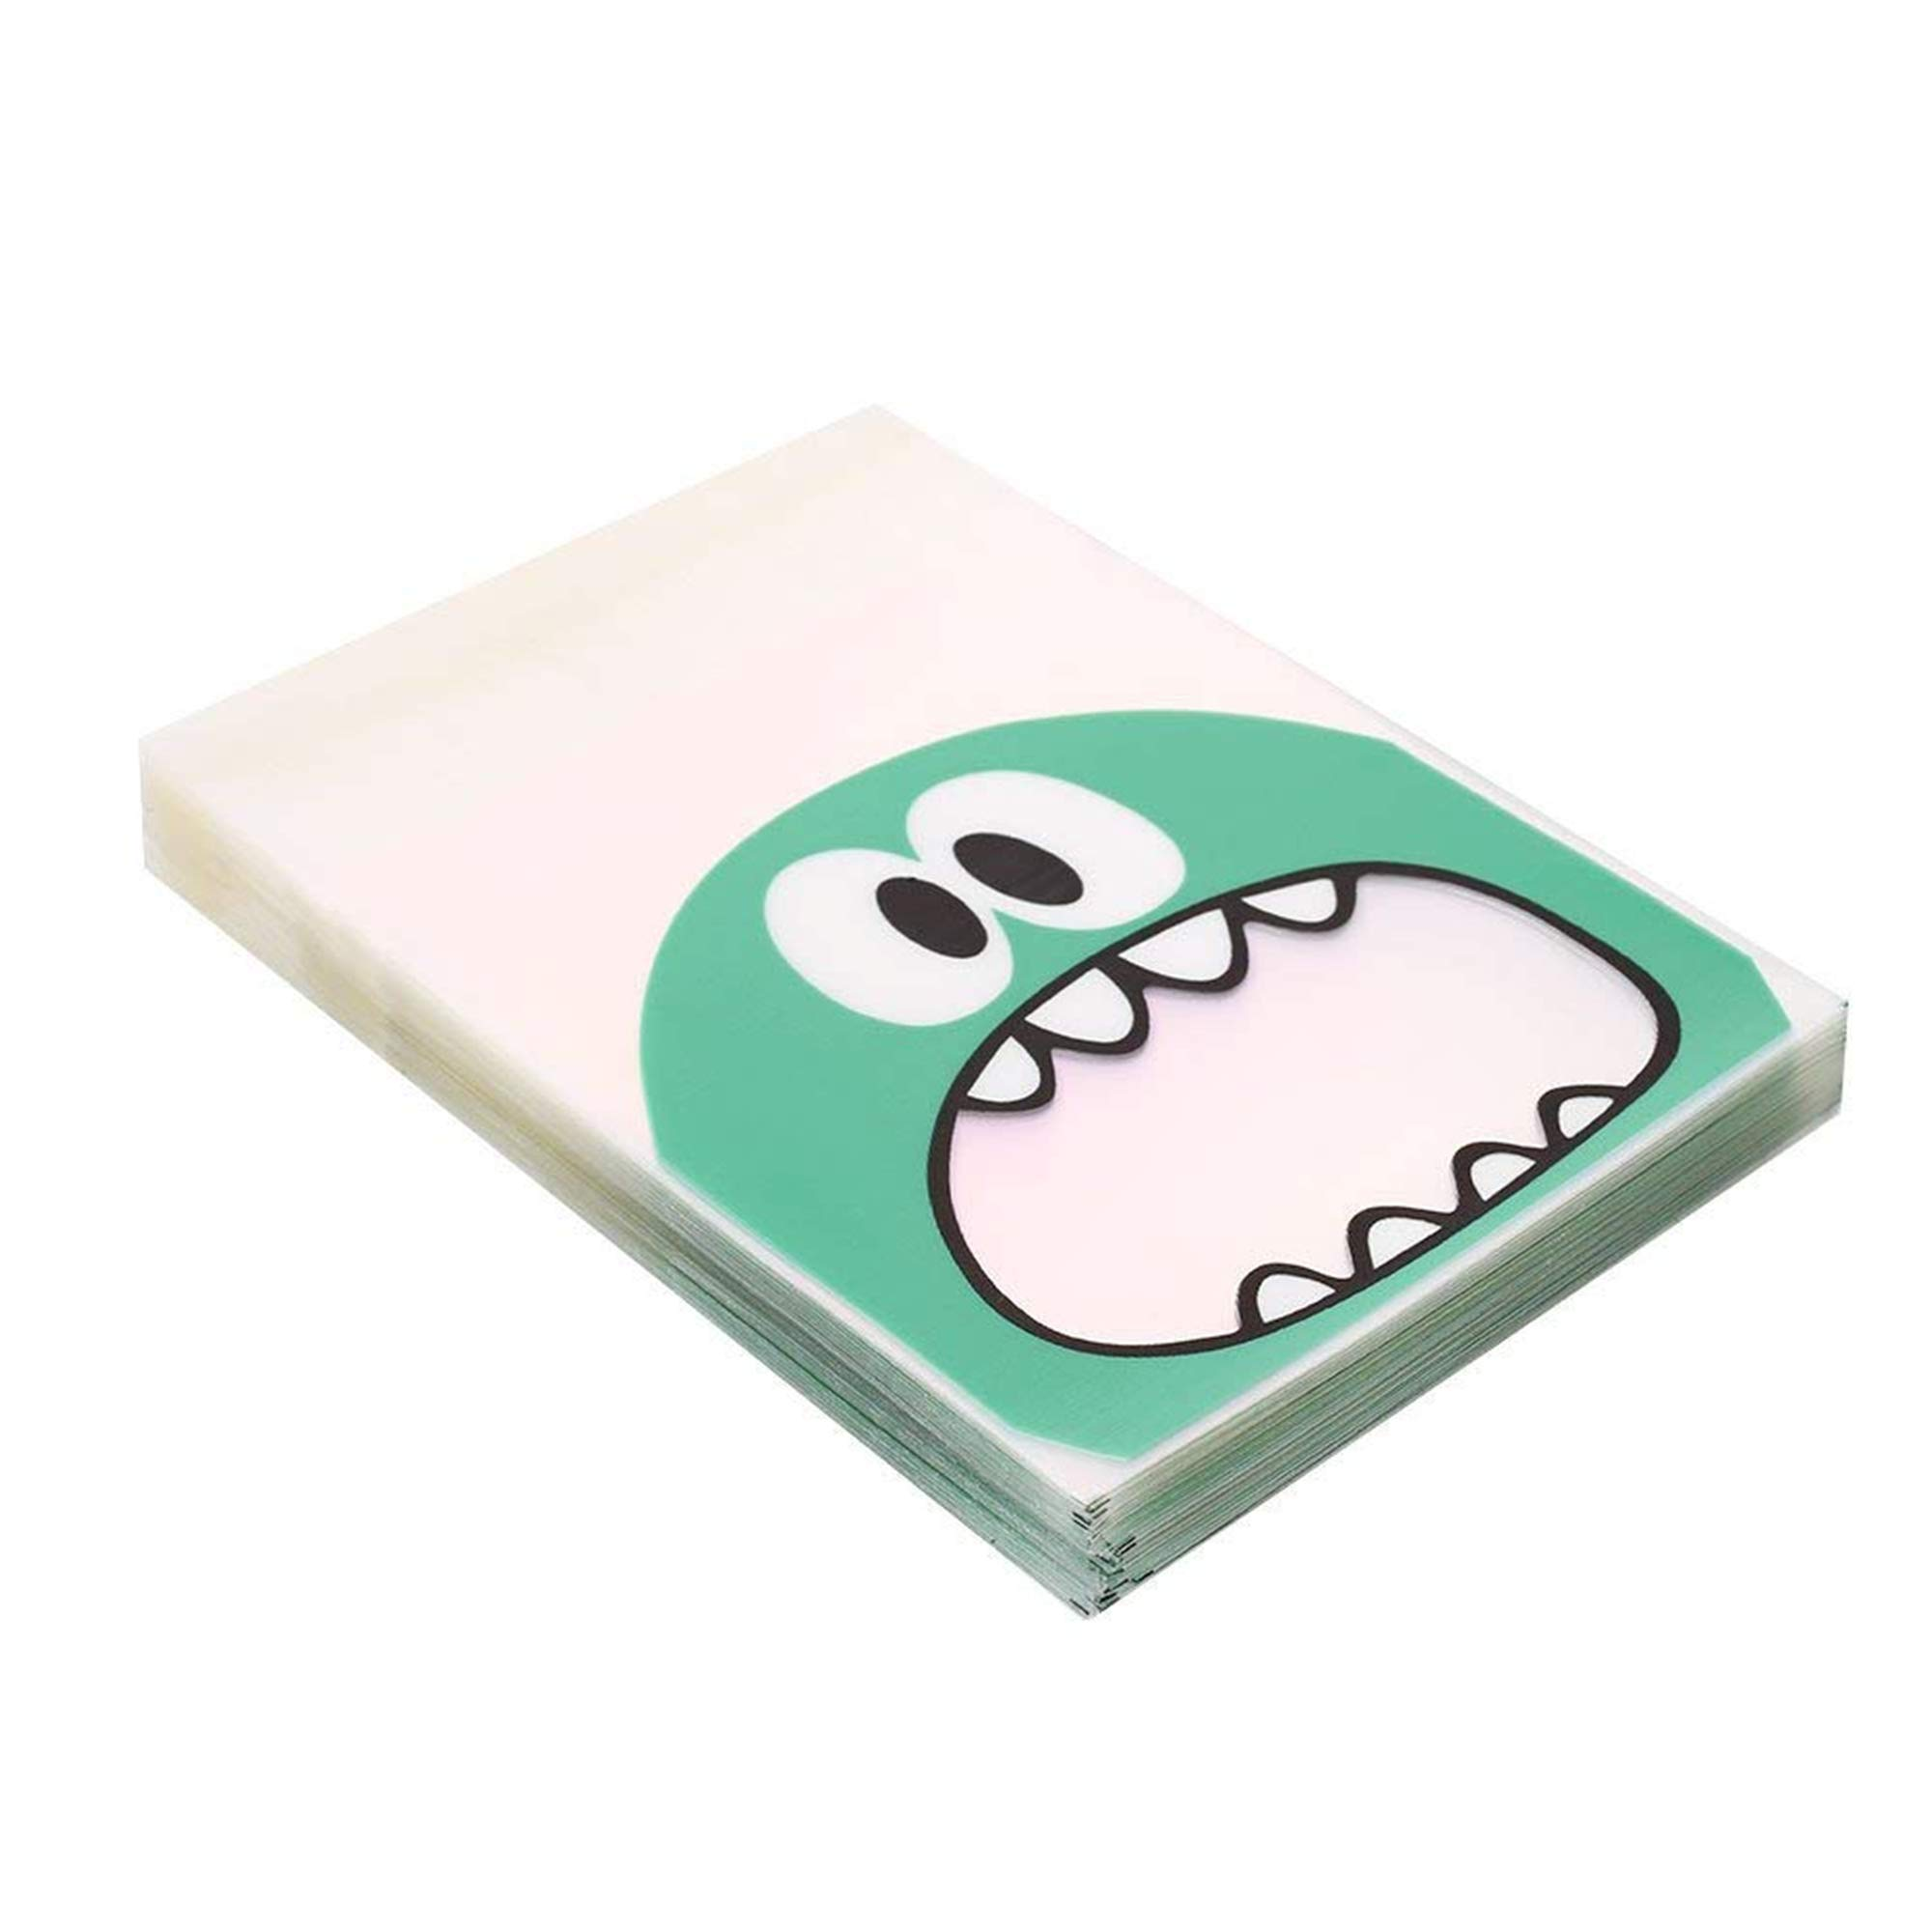 Wootkey Candy Bags 300 pcs 4'' Big Mouth Monster Self Adhesive OPP Cookie Bakery Decorating bags Biscuit Roasting Treat Gift DIY Plastic Bag by Wootkey (Image #4)